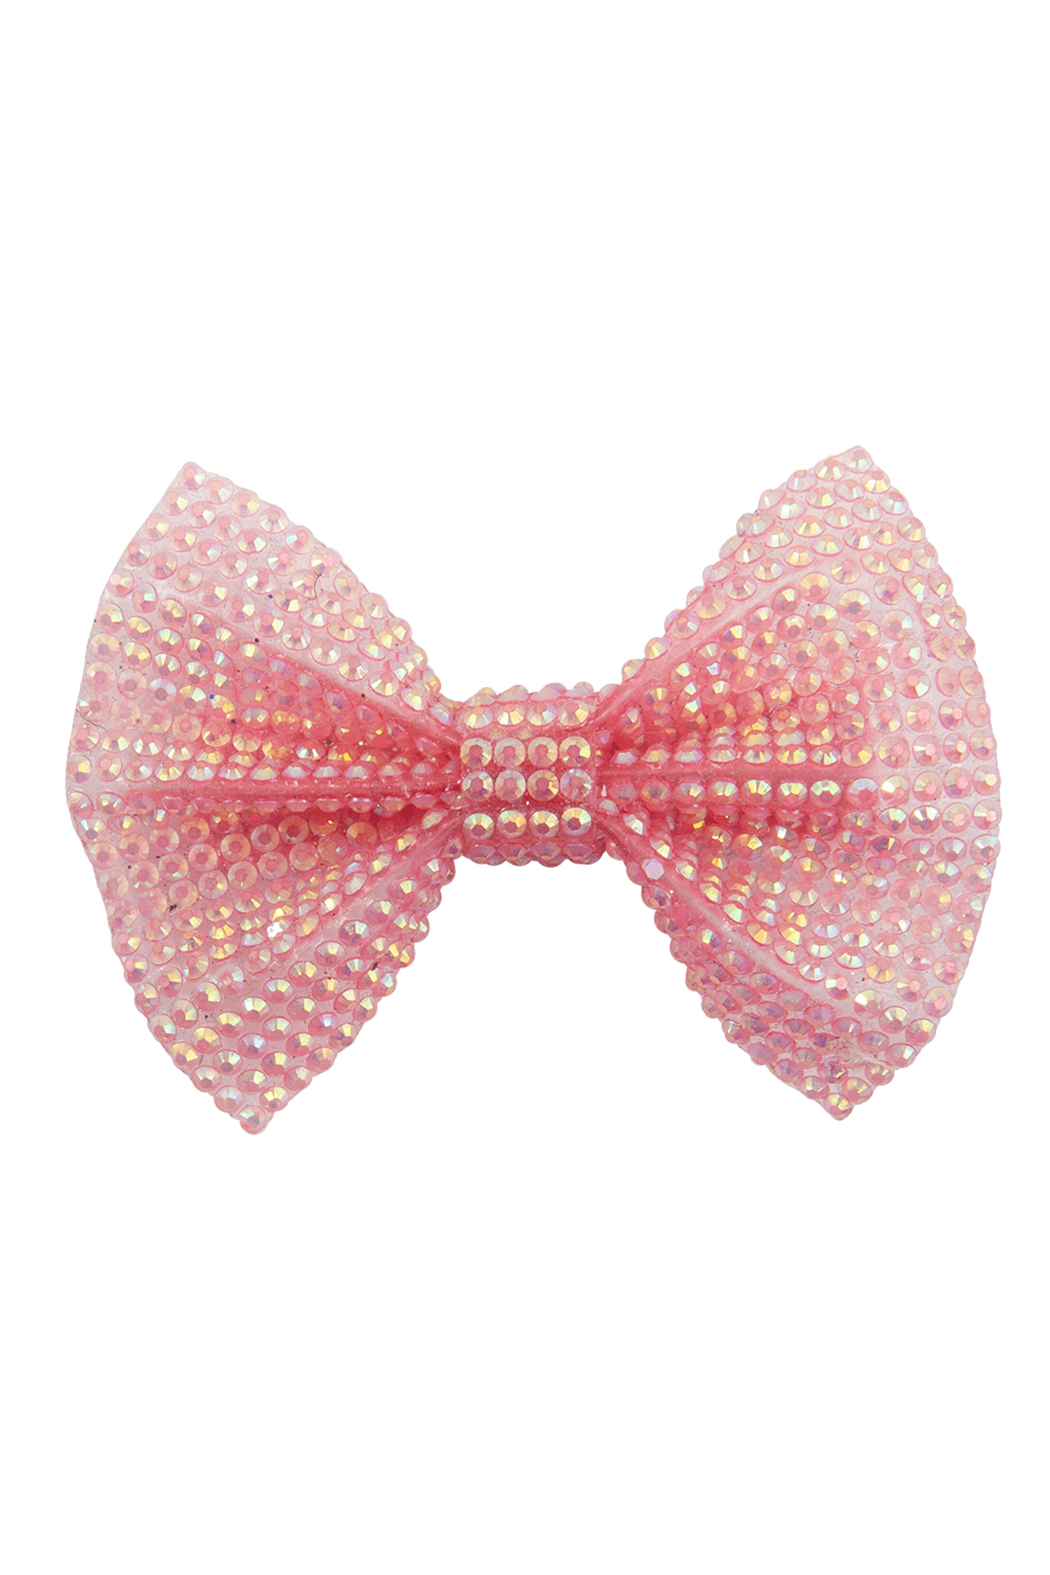 Great Pretenders  Boutique Pink Gem Bow Hair Clip - Main Image